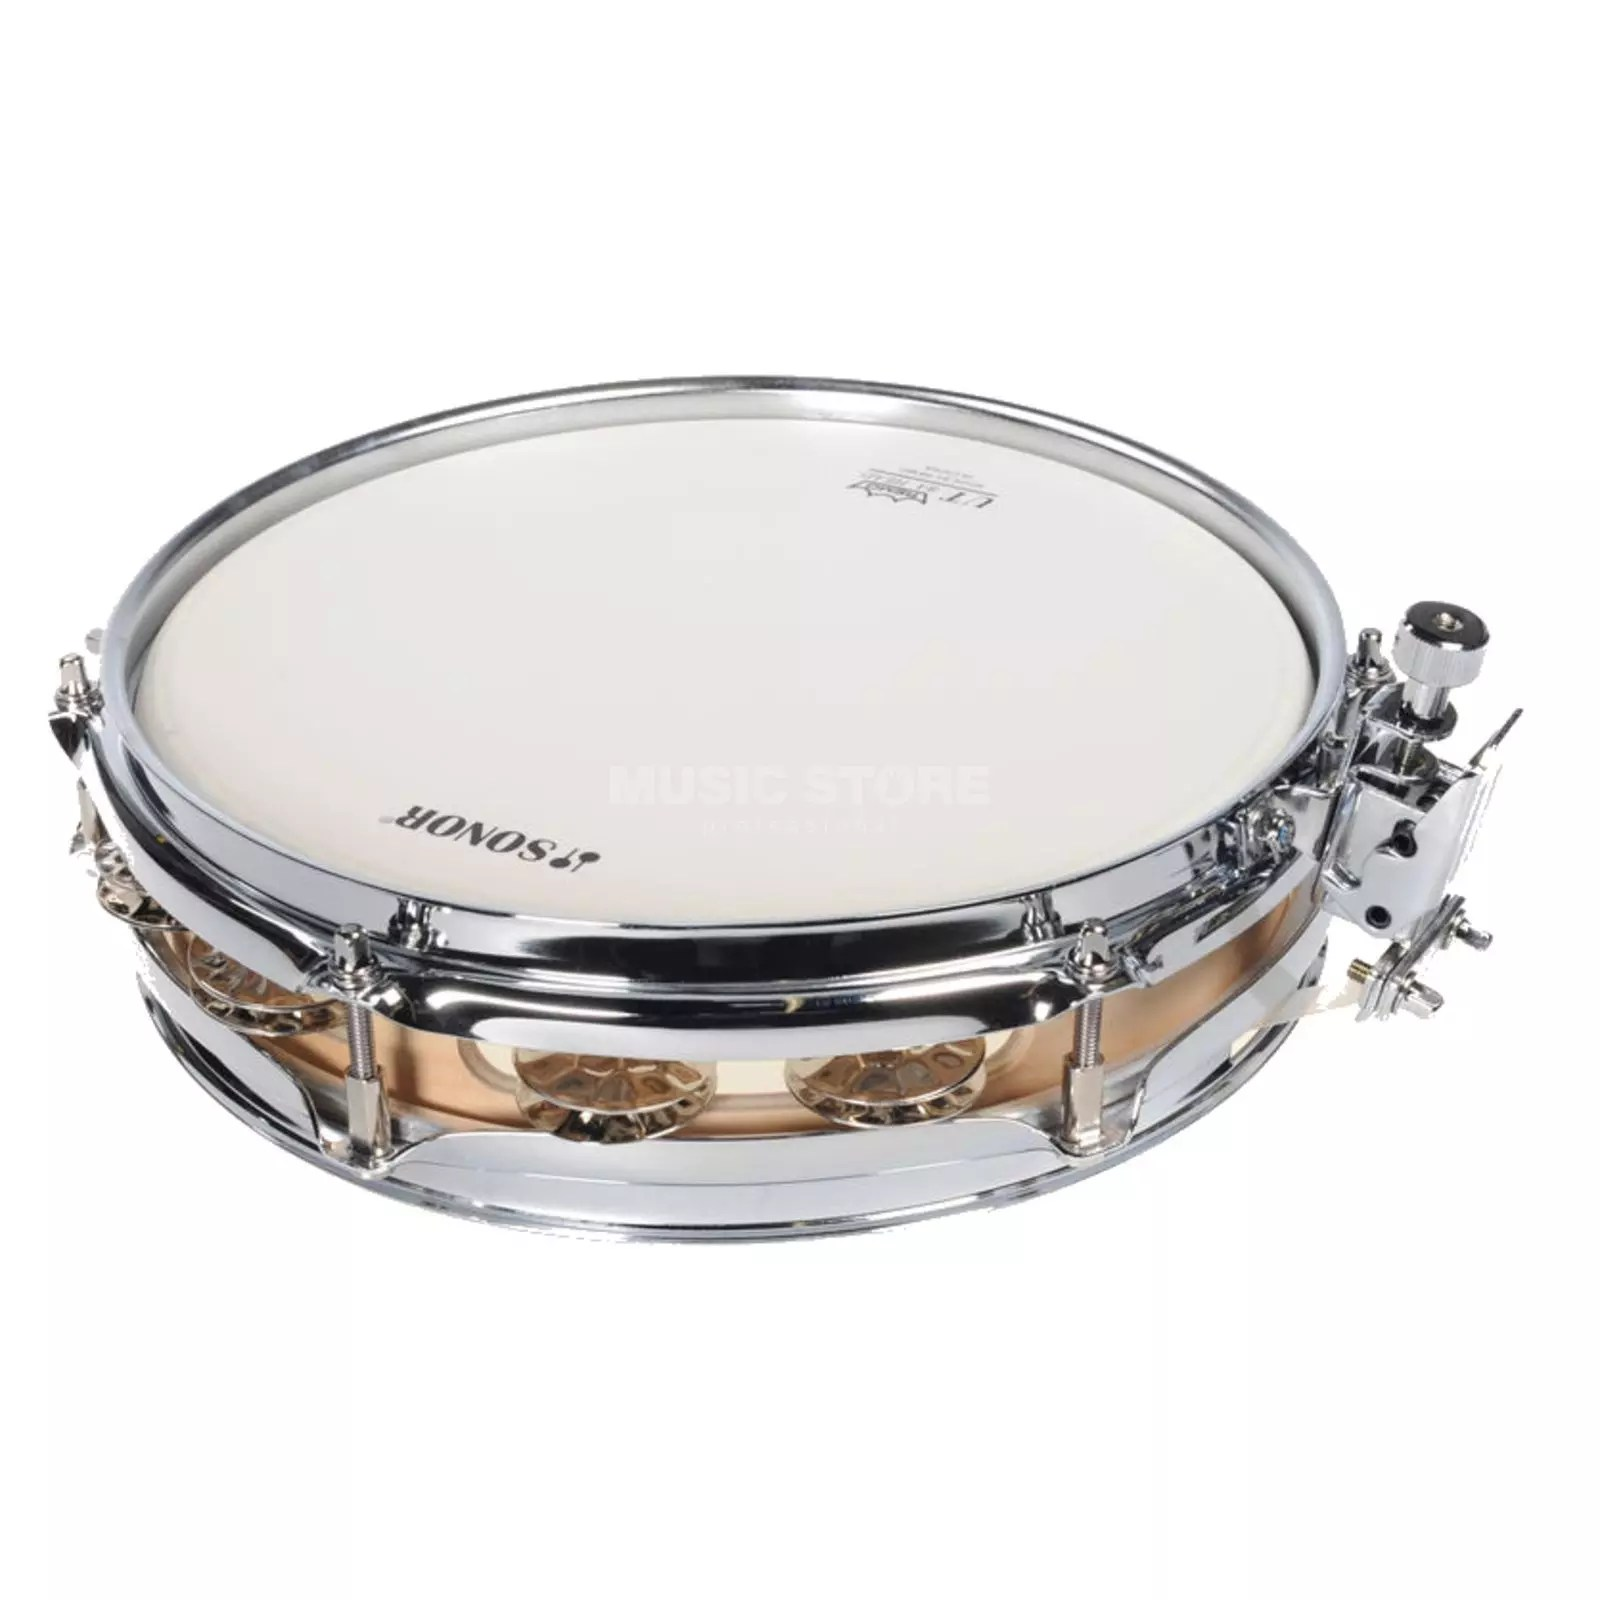 Www.twenga.de Sef11 1002 Sdj Jungle Snare Select Force 10x2